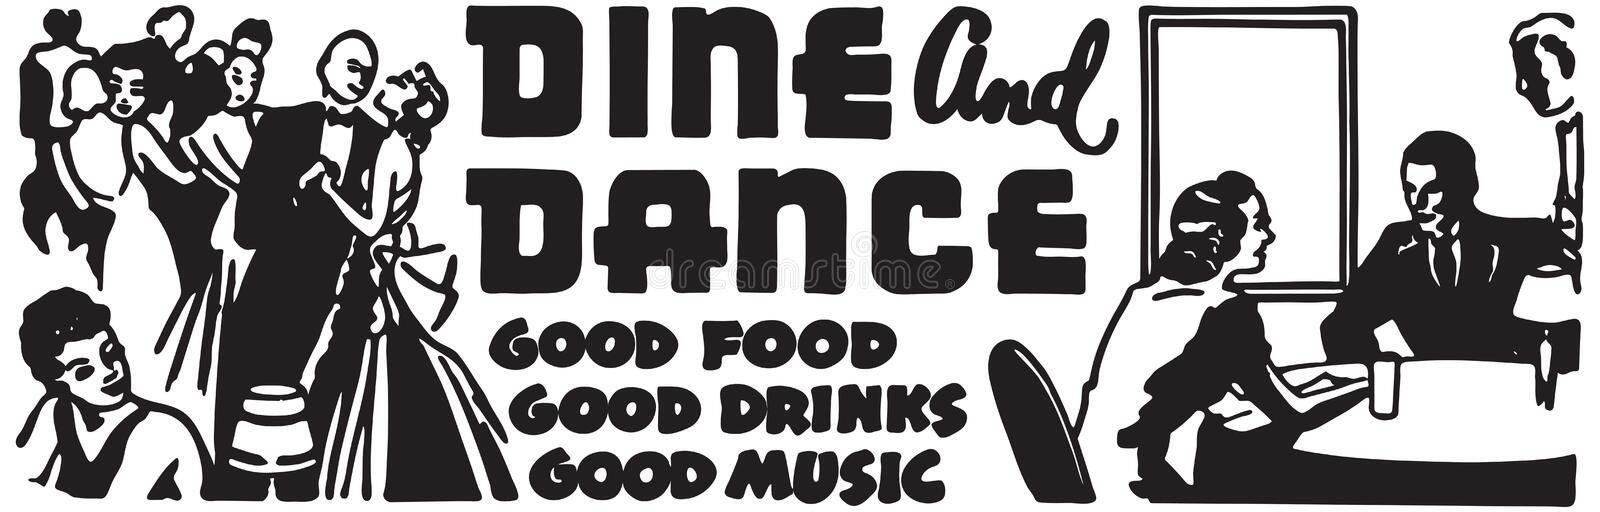 Dine And Dance 5. Retro Ad Art Banner stock illustration